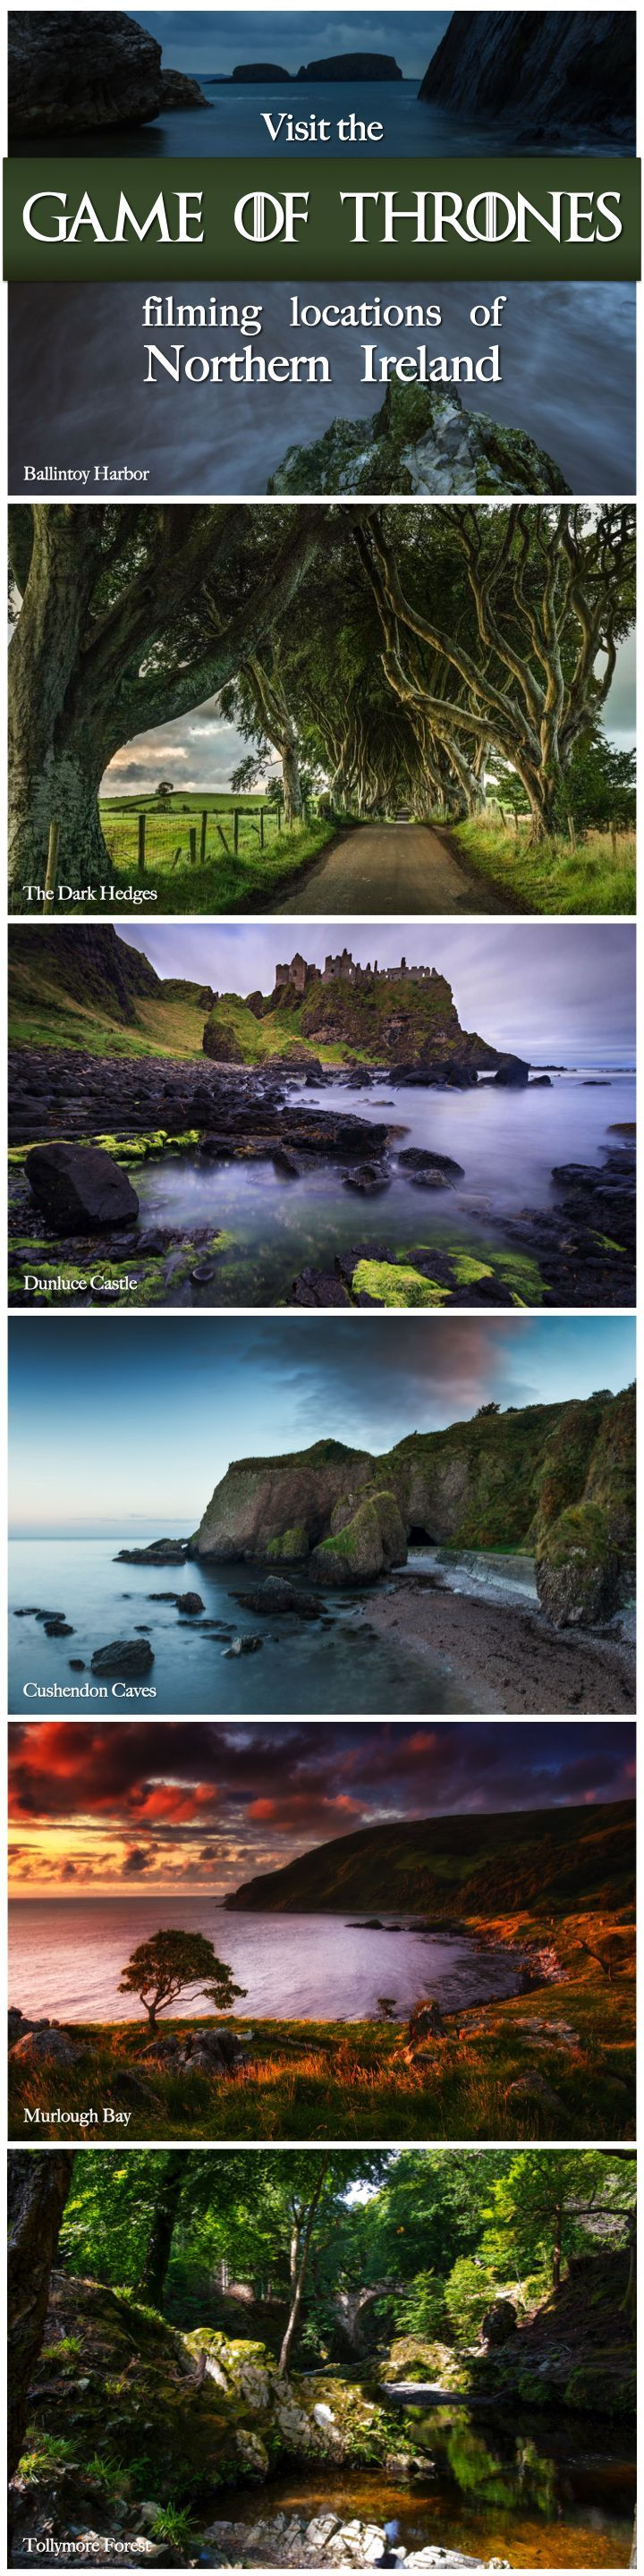 Planning on visiting the Emerald Isle? We know where you can stop to see the filming locations of HBO's hit series, Game of Thrones. Northern Ireland is home to a number of the show's filming sites - many of which are free to visit.